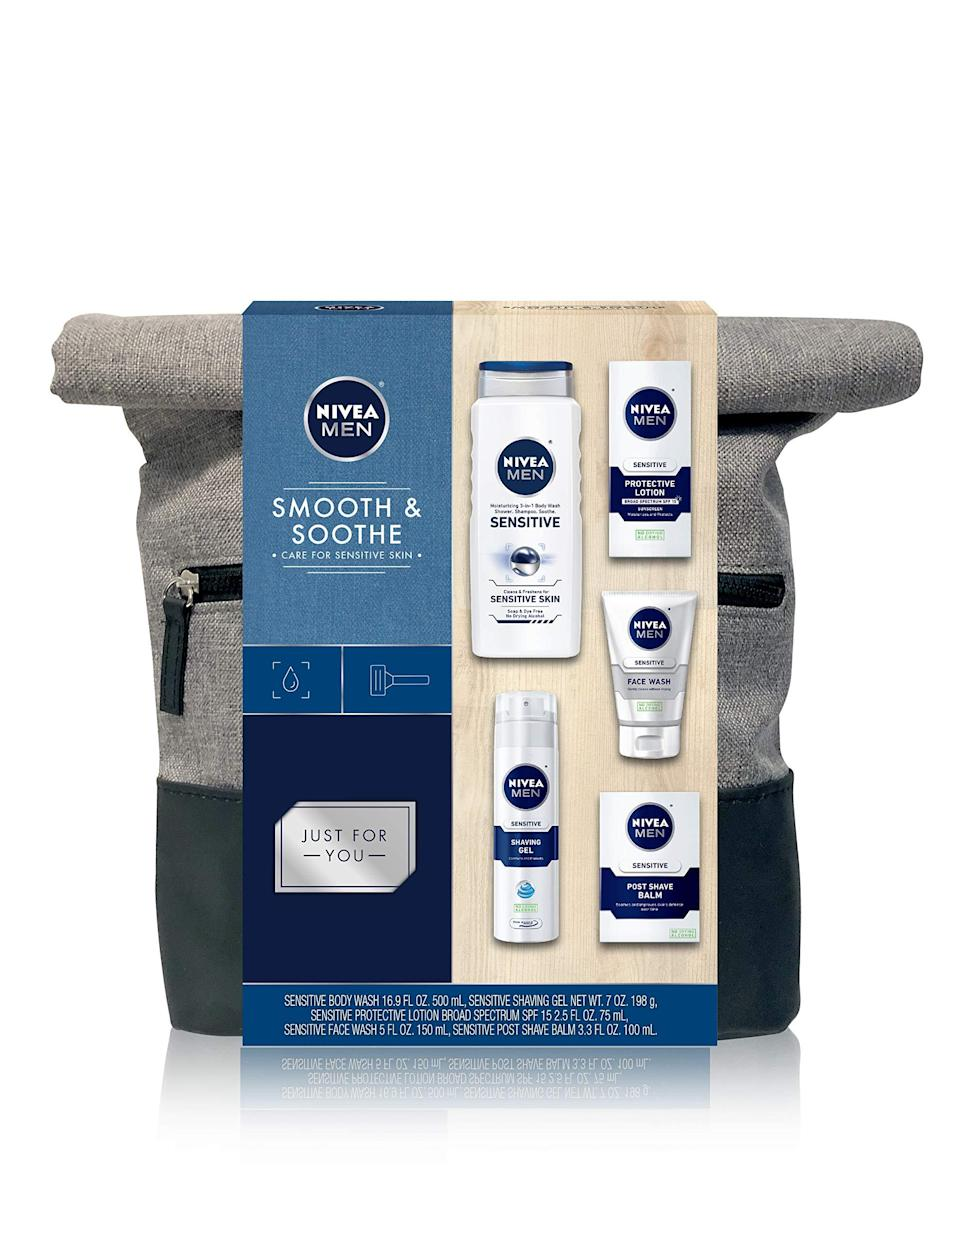 """<h3><a href=""""https://amzn.to/36as7Tt"""" rel=""""nofollow noopener"""" target=""""_blank"""" data-ylk=""""slk:Nivea Men Dapper Duffel Gift Set"""" class=""""link rapid-noclick-resp"""">Nivea Men Dapper Duffel Gift Set</a></h3><br>This Amazon Prime gem includes everything a man needs to take care of his skin from H2T: Shaving gel, post-shave balm, cleanser, lotion, and even a full-size shower gel.<br><br><strong>Nivea</strong> Men Dapper Duffel Gift Set - 5 Piece Collection, $, available at <a href=""""https://amzn.to/3kVCjGI"""" rel=""""nofollow noopener"""" target=""""_blank"""" data-ylk=""""slk:Amazon"""" class=""""link rapid-noclick-resp"""">Amazon</a>"""